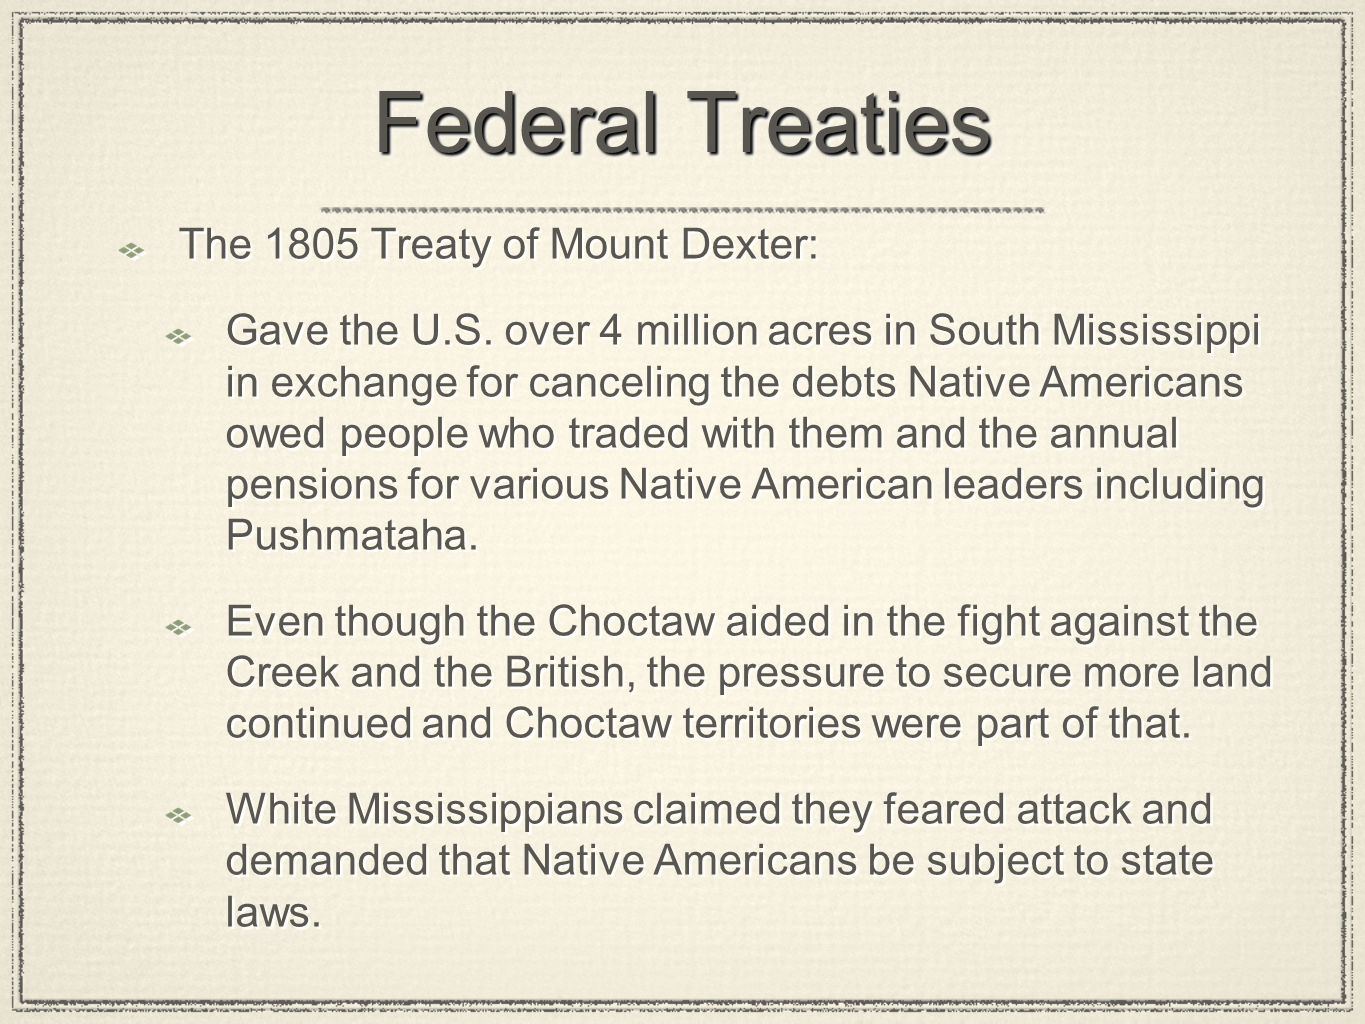 Federal Treaties The 1805 Treaty of Mount Dexter: Gave the U.S. over 4 million acres in South Mississippi in exchange for canceling the debts Native A